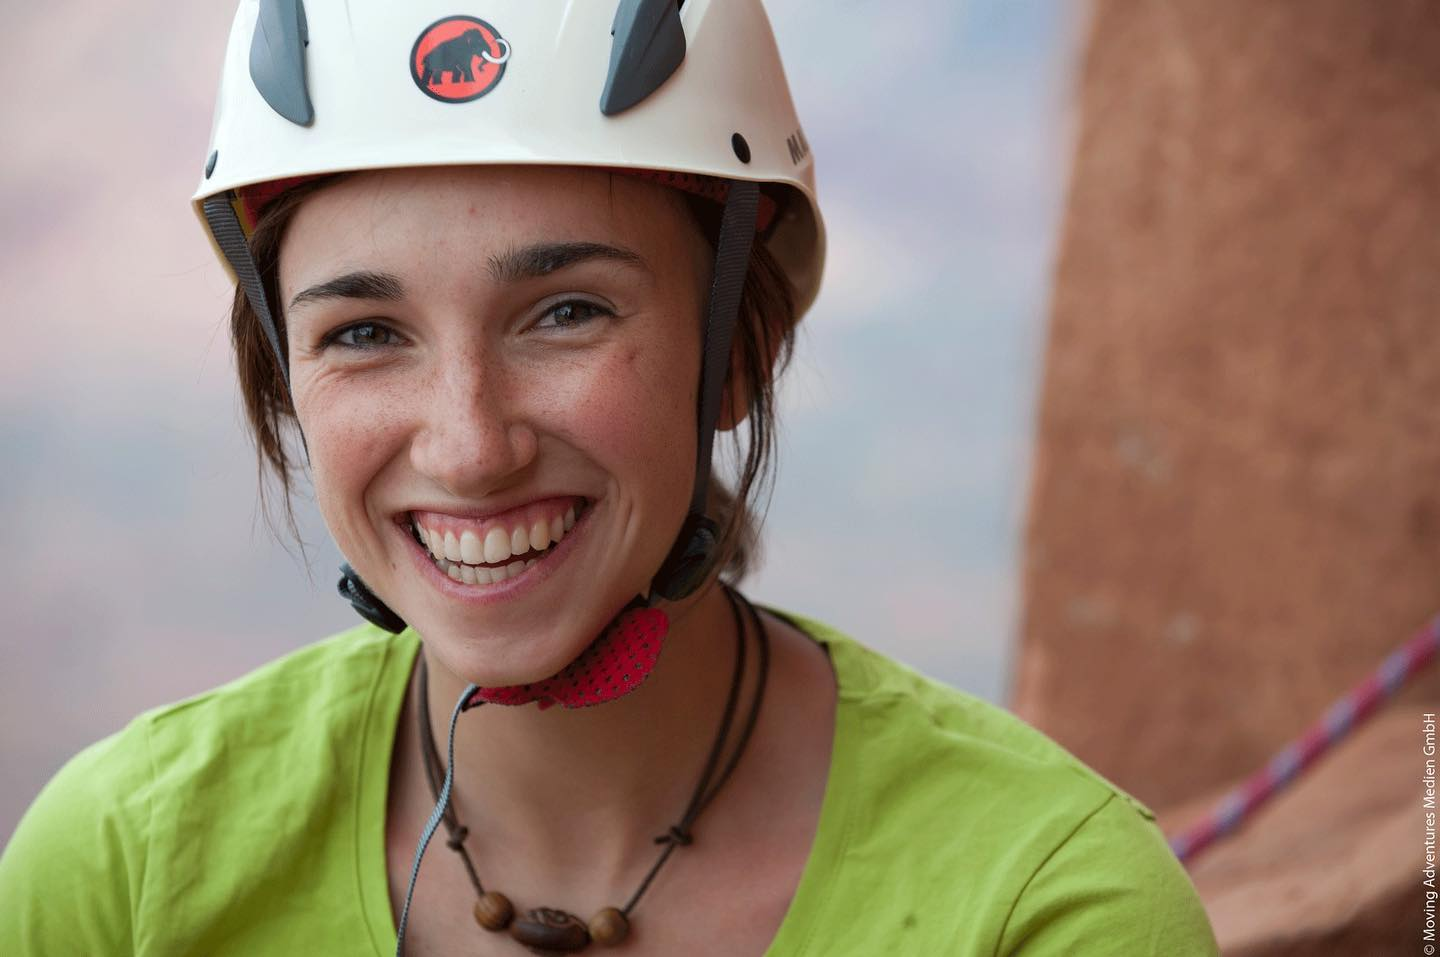 At the iconic Castleton Tower in Utah, two generations of climbers meet. Lynn Hill, living climbi...